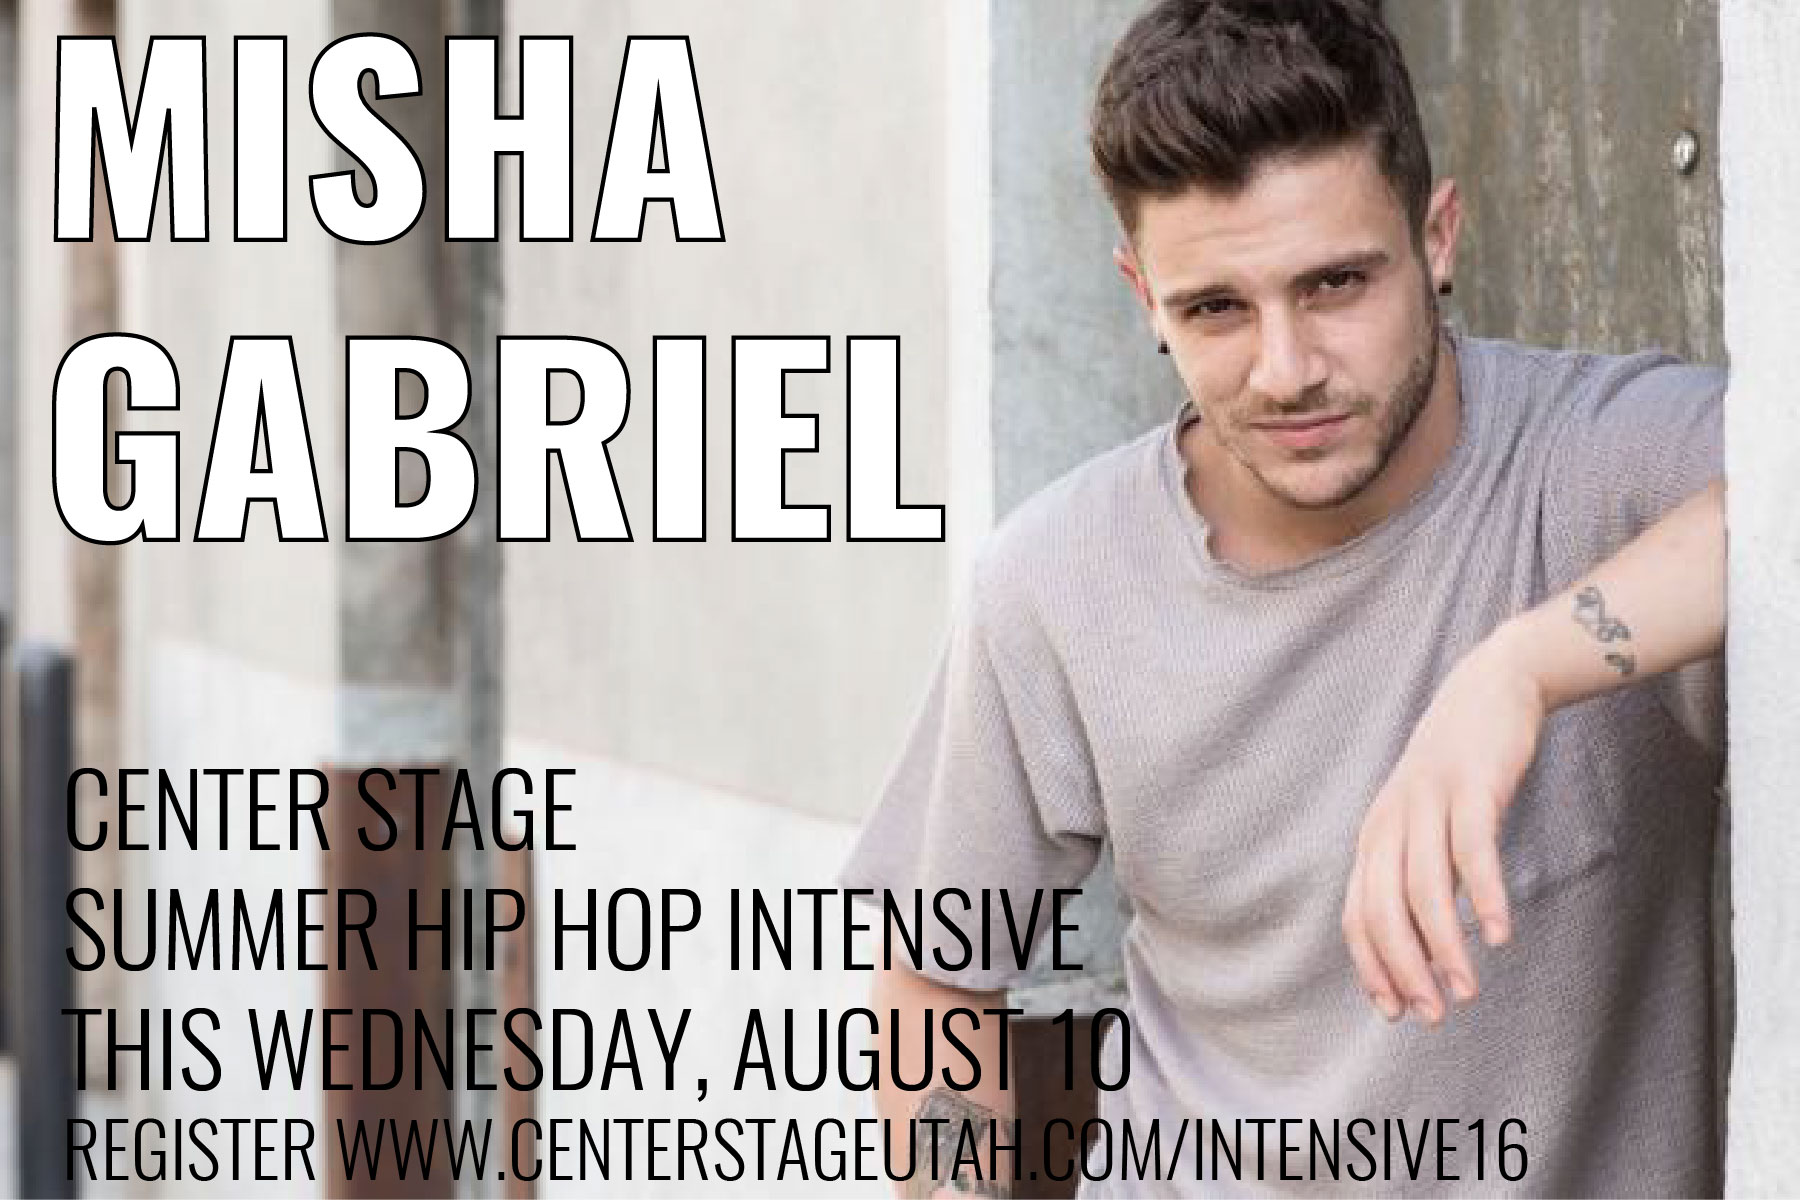 MISHA GABRIEL, 2016 Summer Hip Hop Intensive Instructor